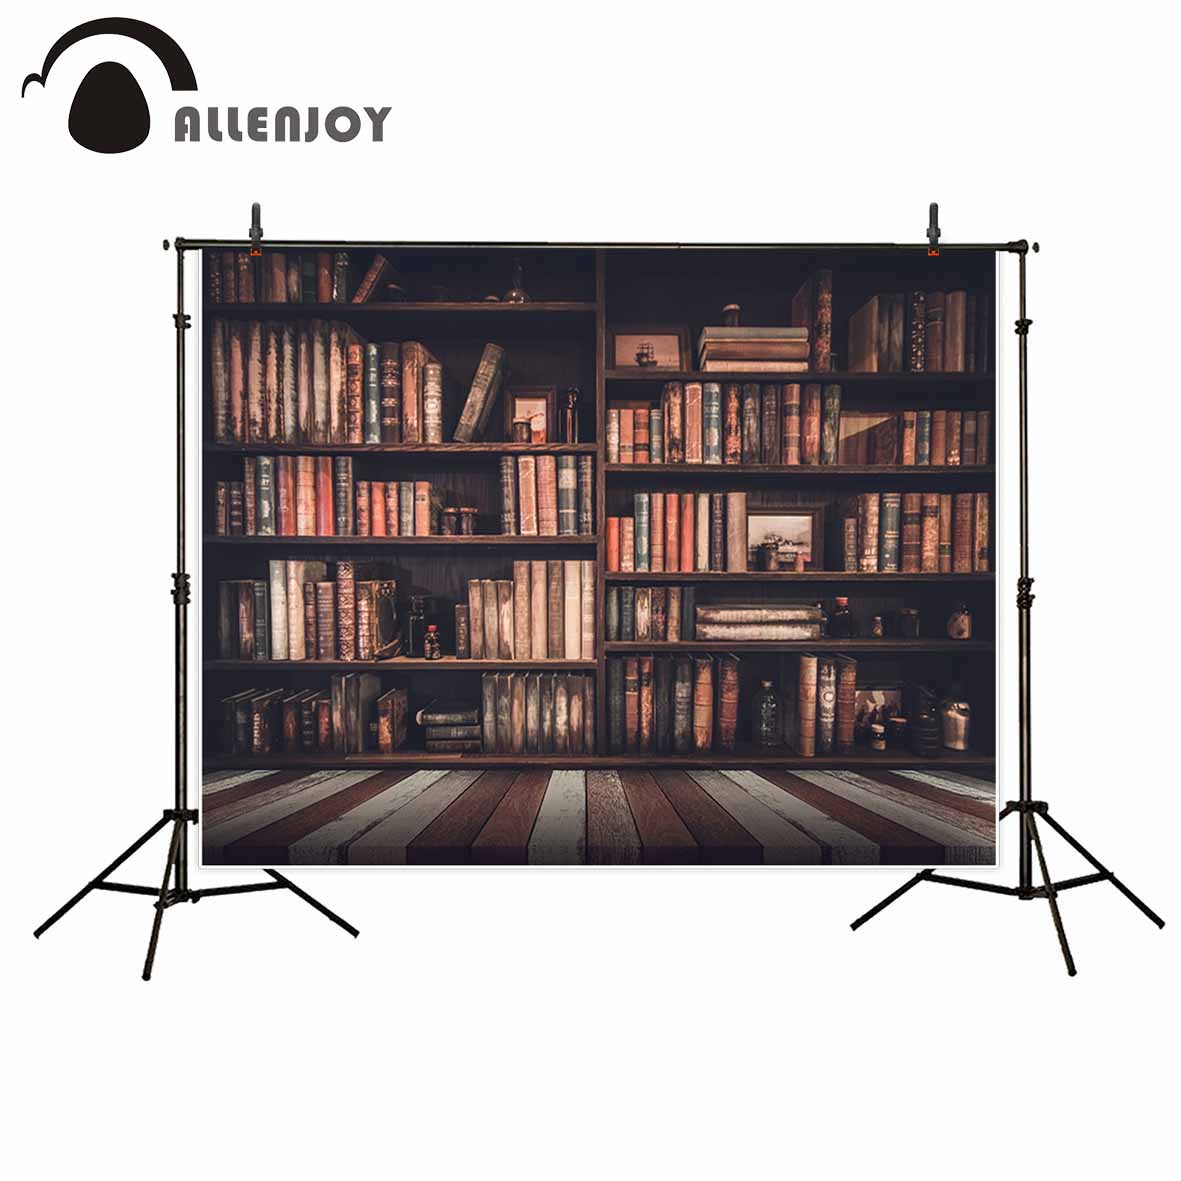 Allenjoy newborn photography background Bookshelves Ancient classic retro learning floor photo studio photobooth high quality jin hao high quality classic ancient